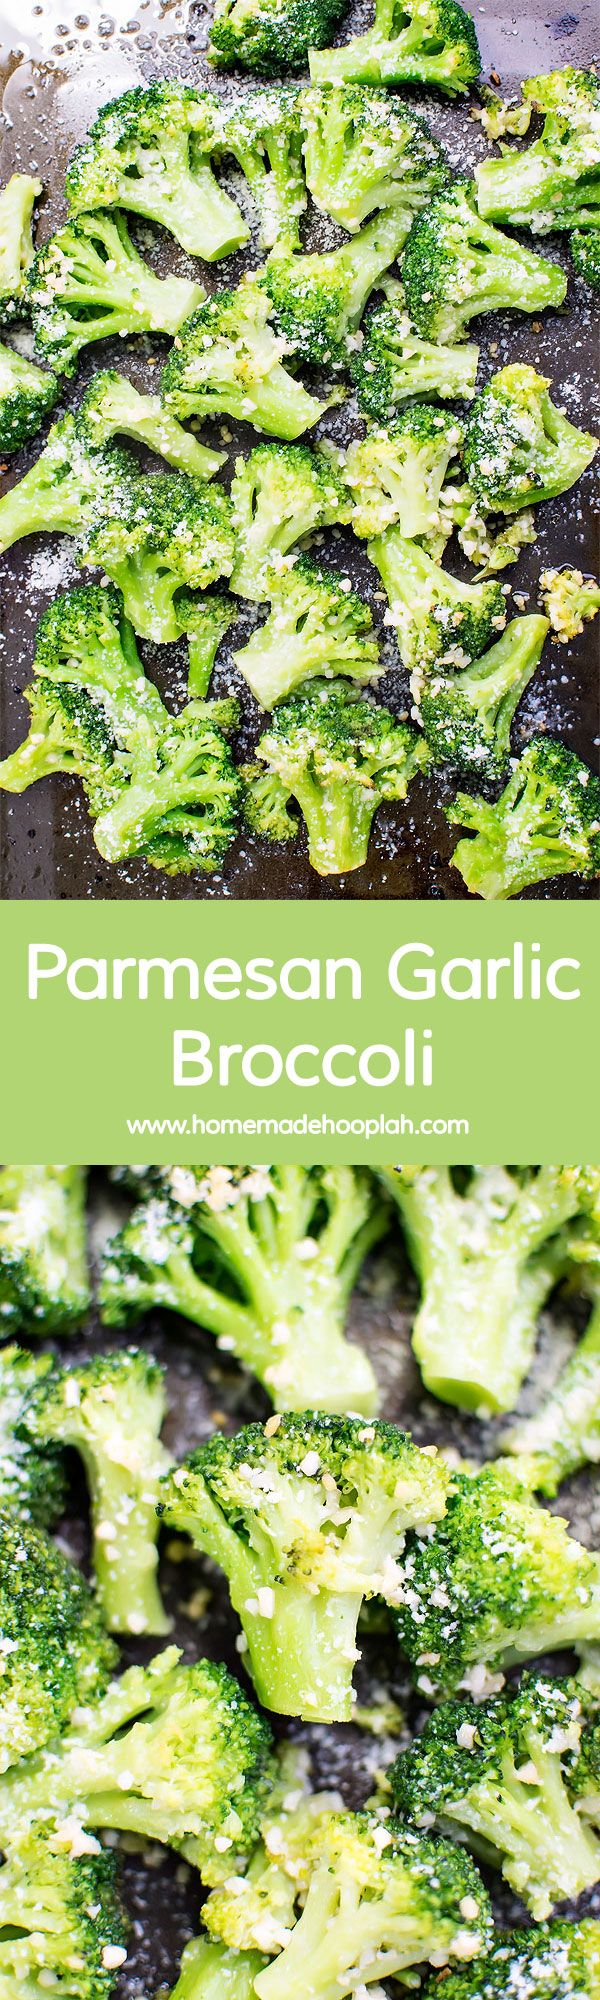 Garlic Parmesan Broccoli! The perfect side dish to any meal! Broccoli baked with olive oil and garlic then sprinkled with parmesan cheese.   HomemadeHooplah.com